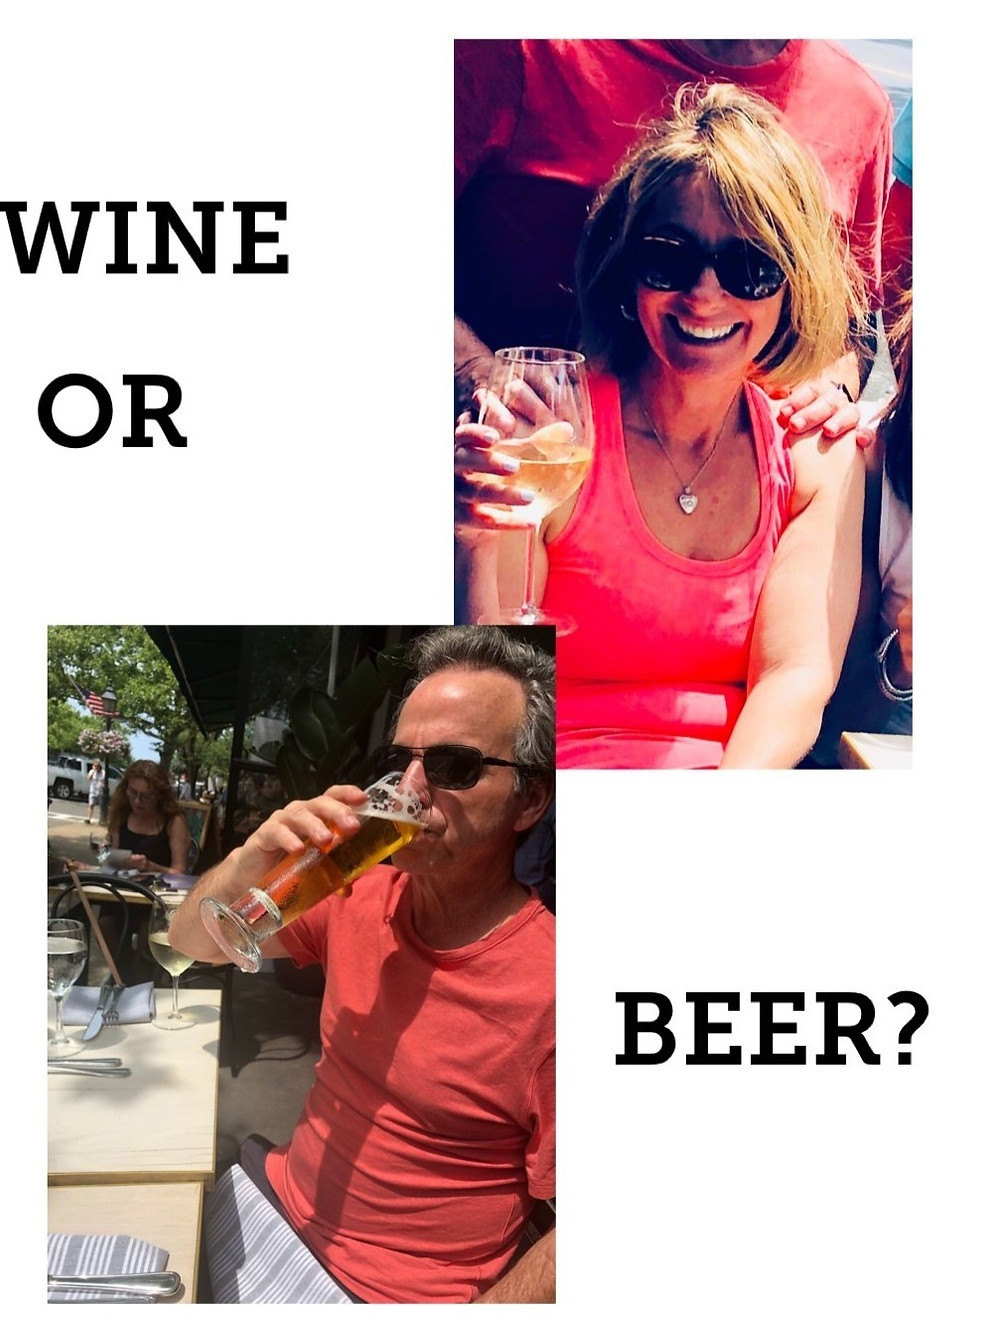 empty nesters finally, drinking wine and beer